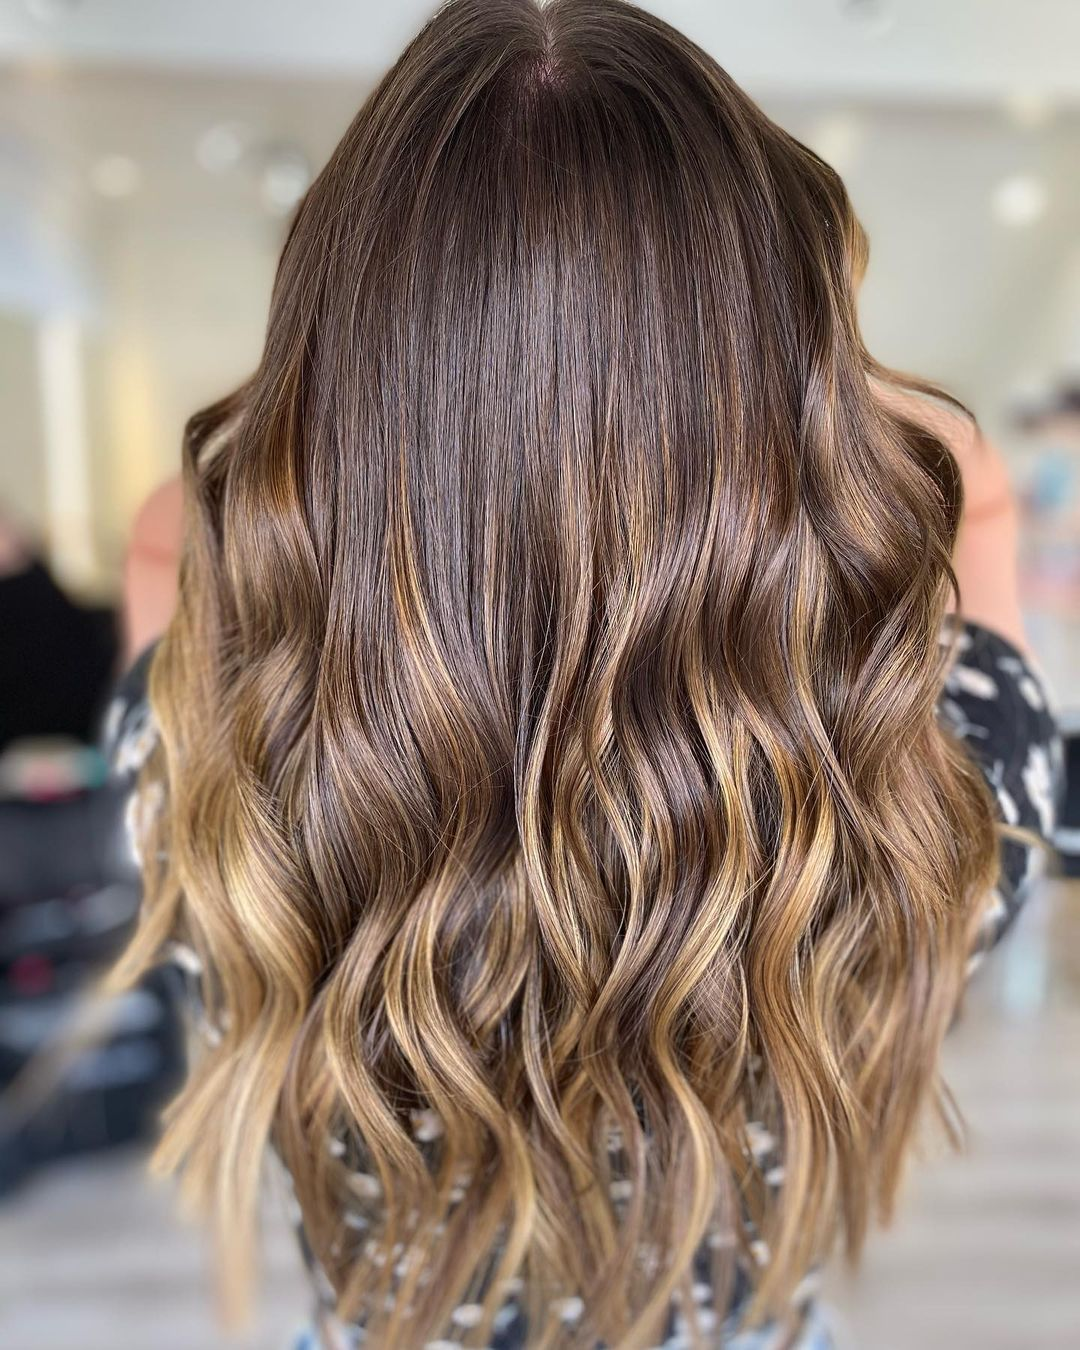 Balayage hair colours for brunettes at Amour hair salon in Greater Manchester